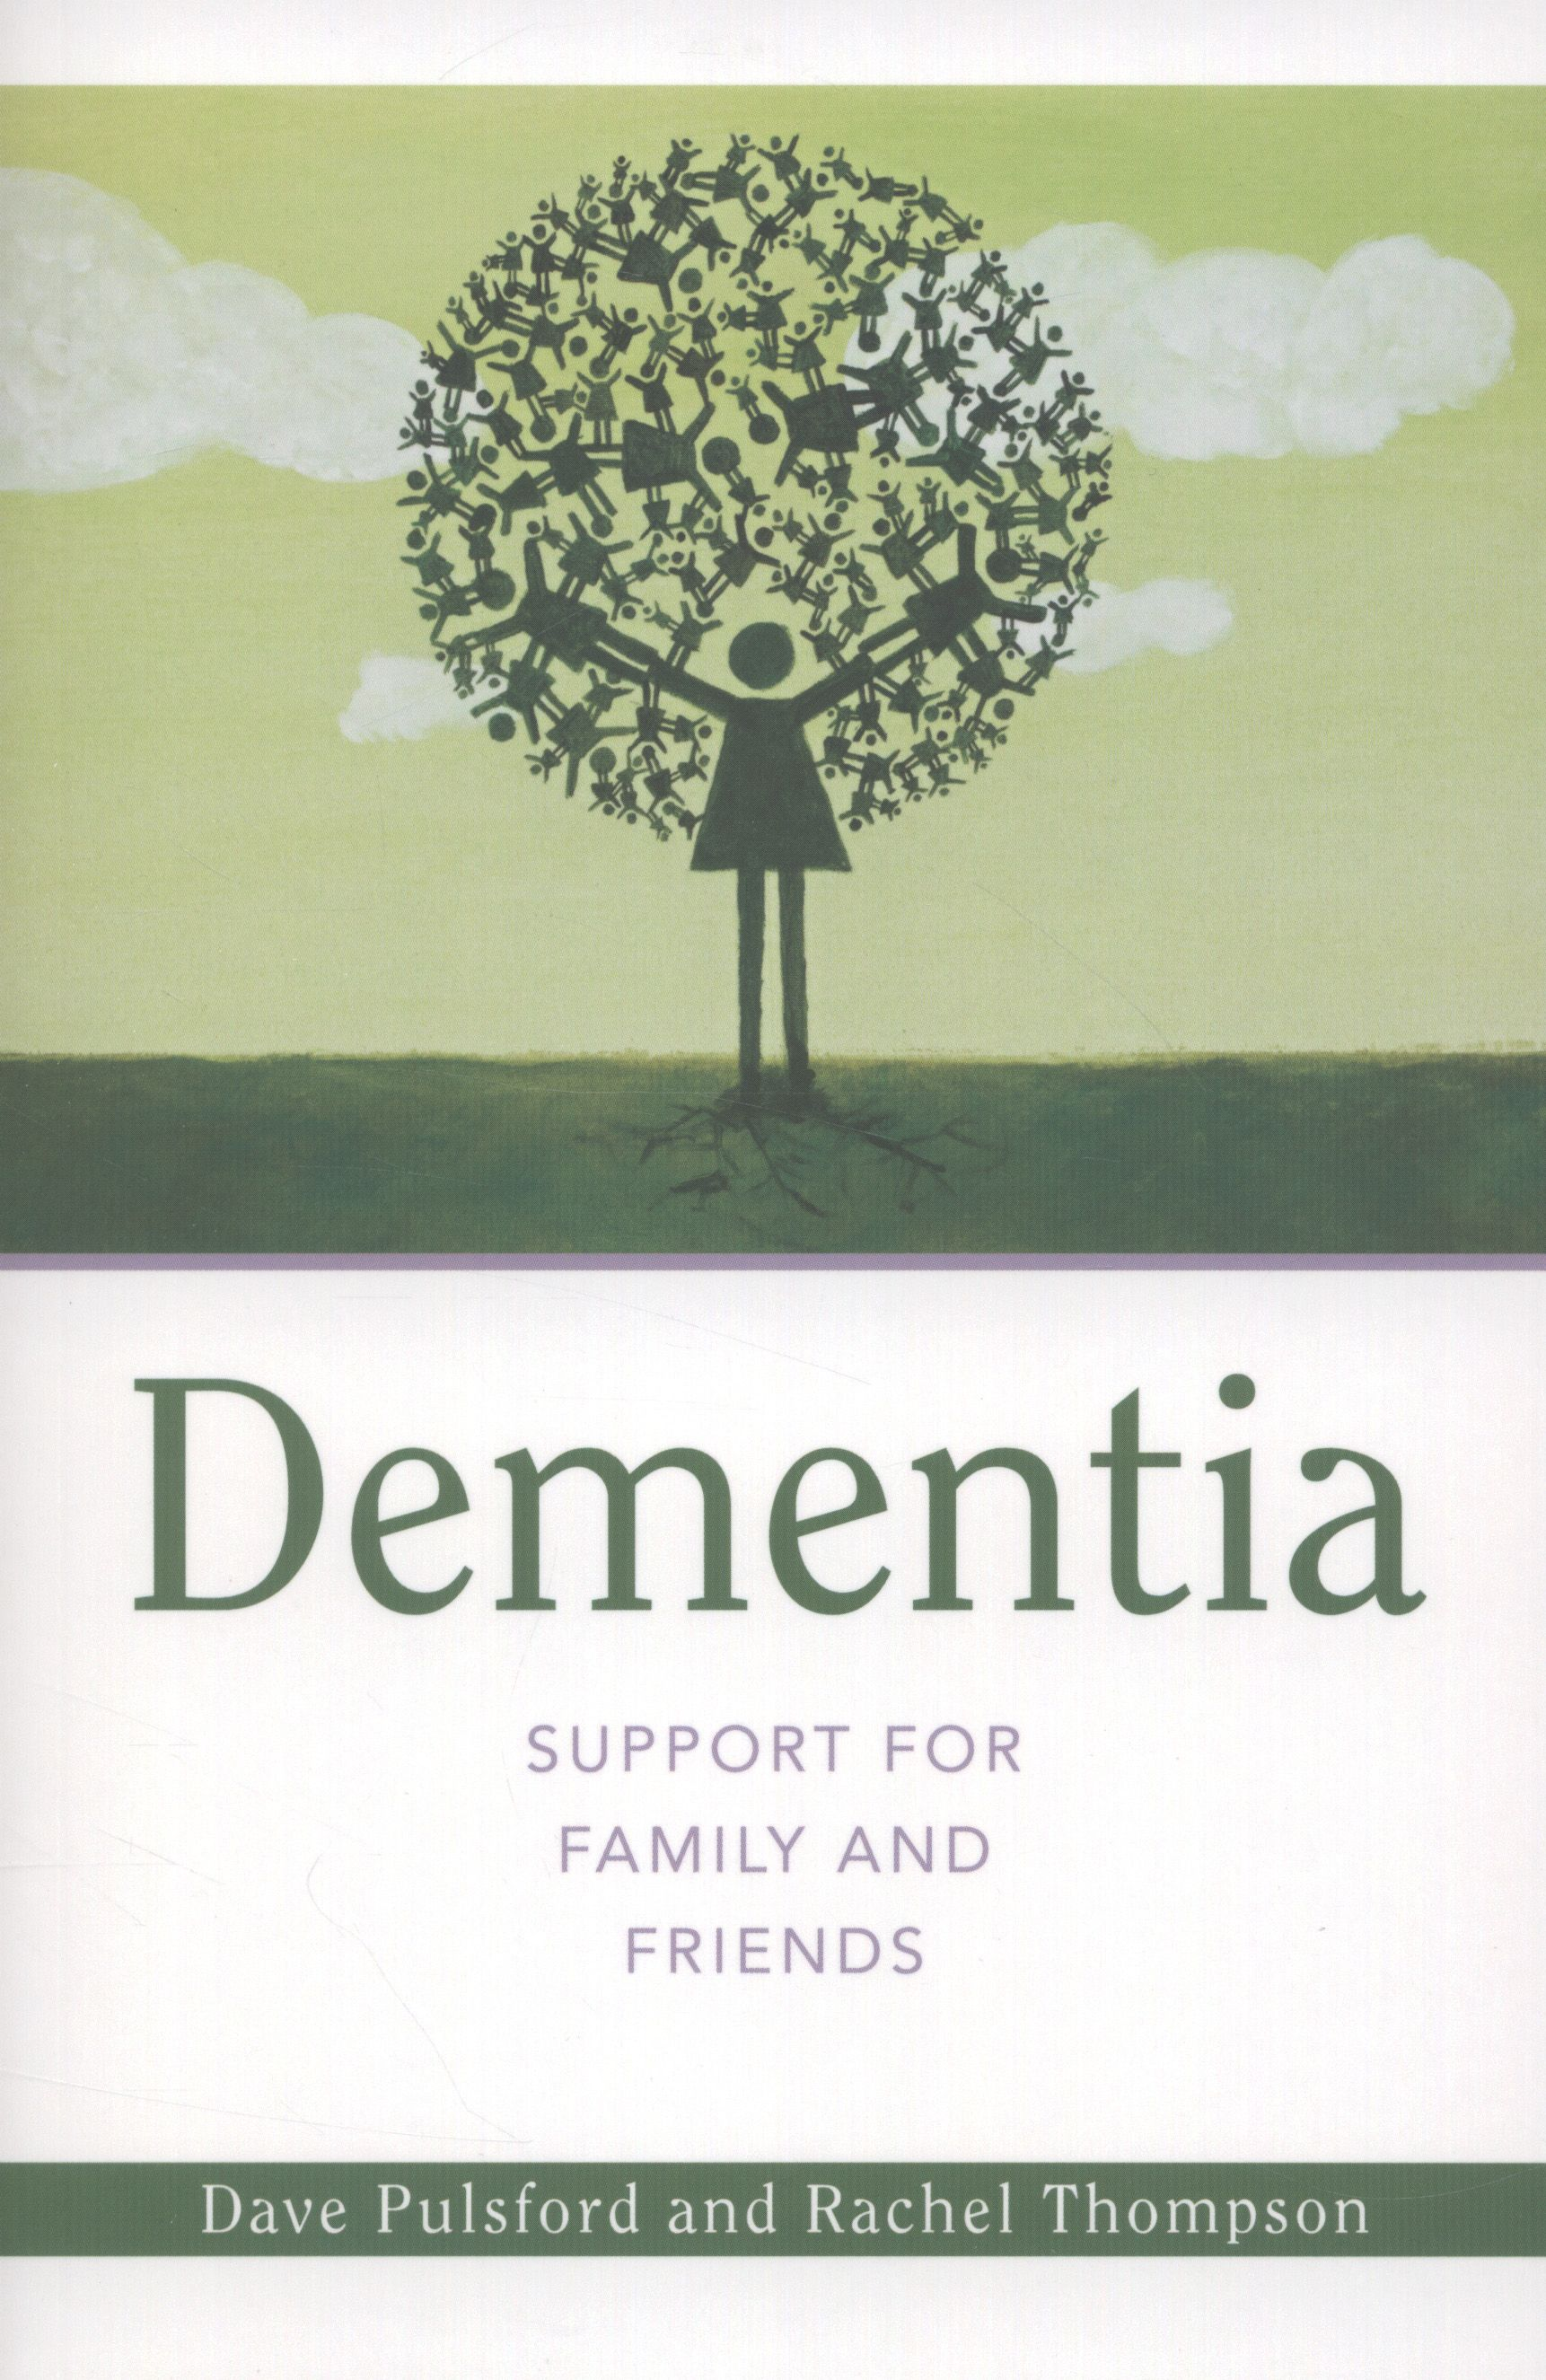 For friends and family members of people with dementia